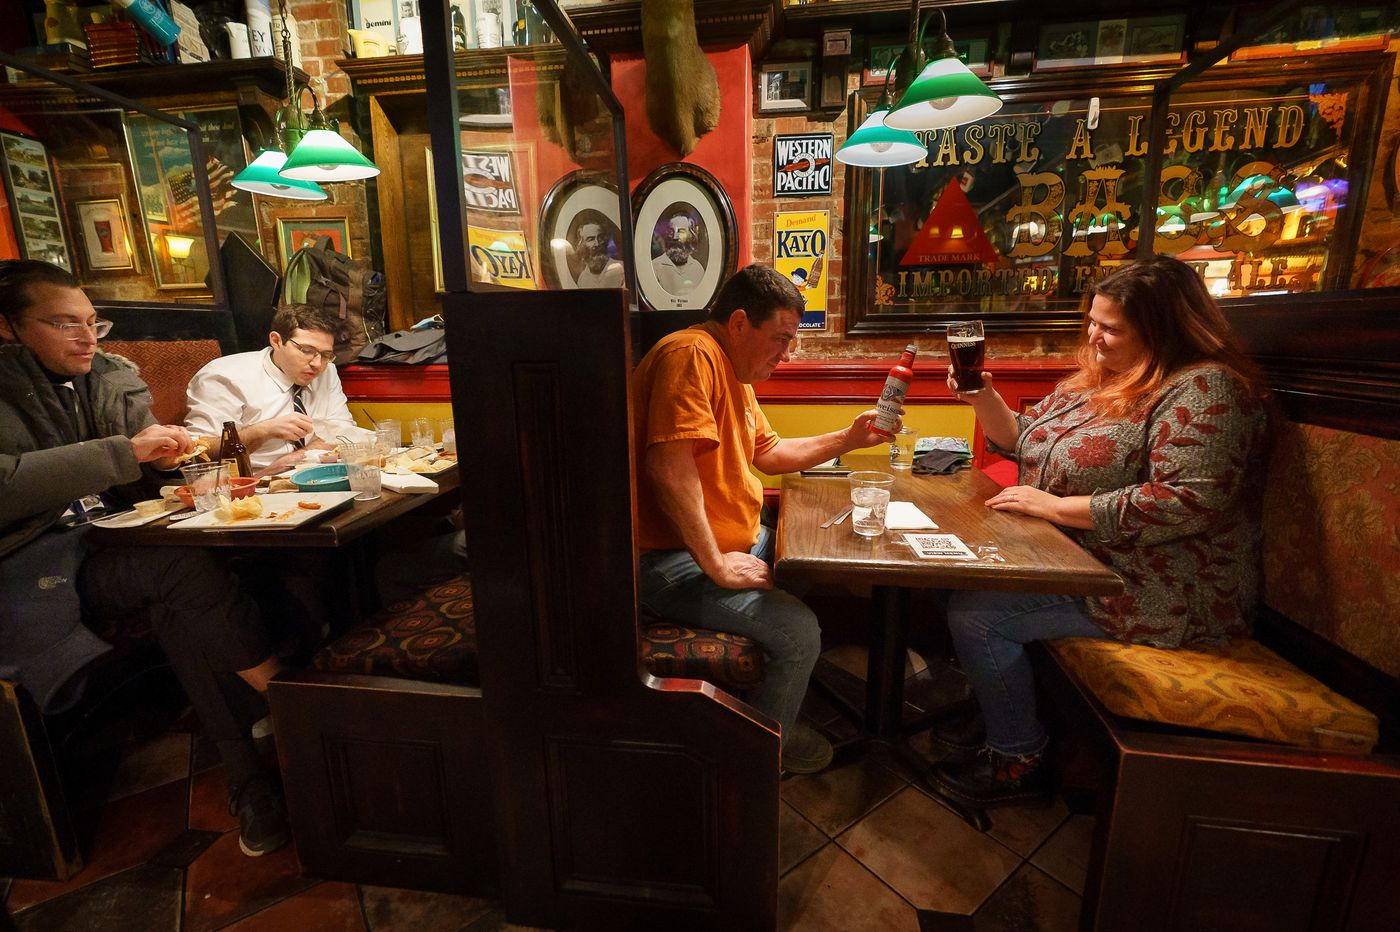 Judge rules against emergency request to lift indoor-dining ban in Philly